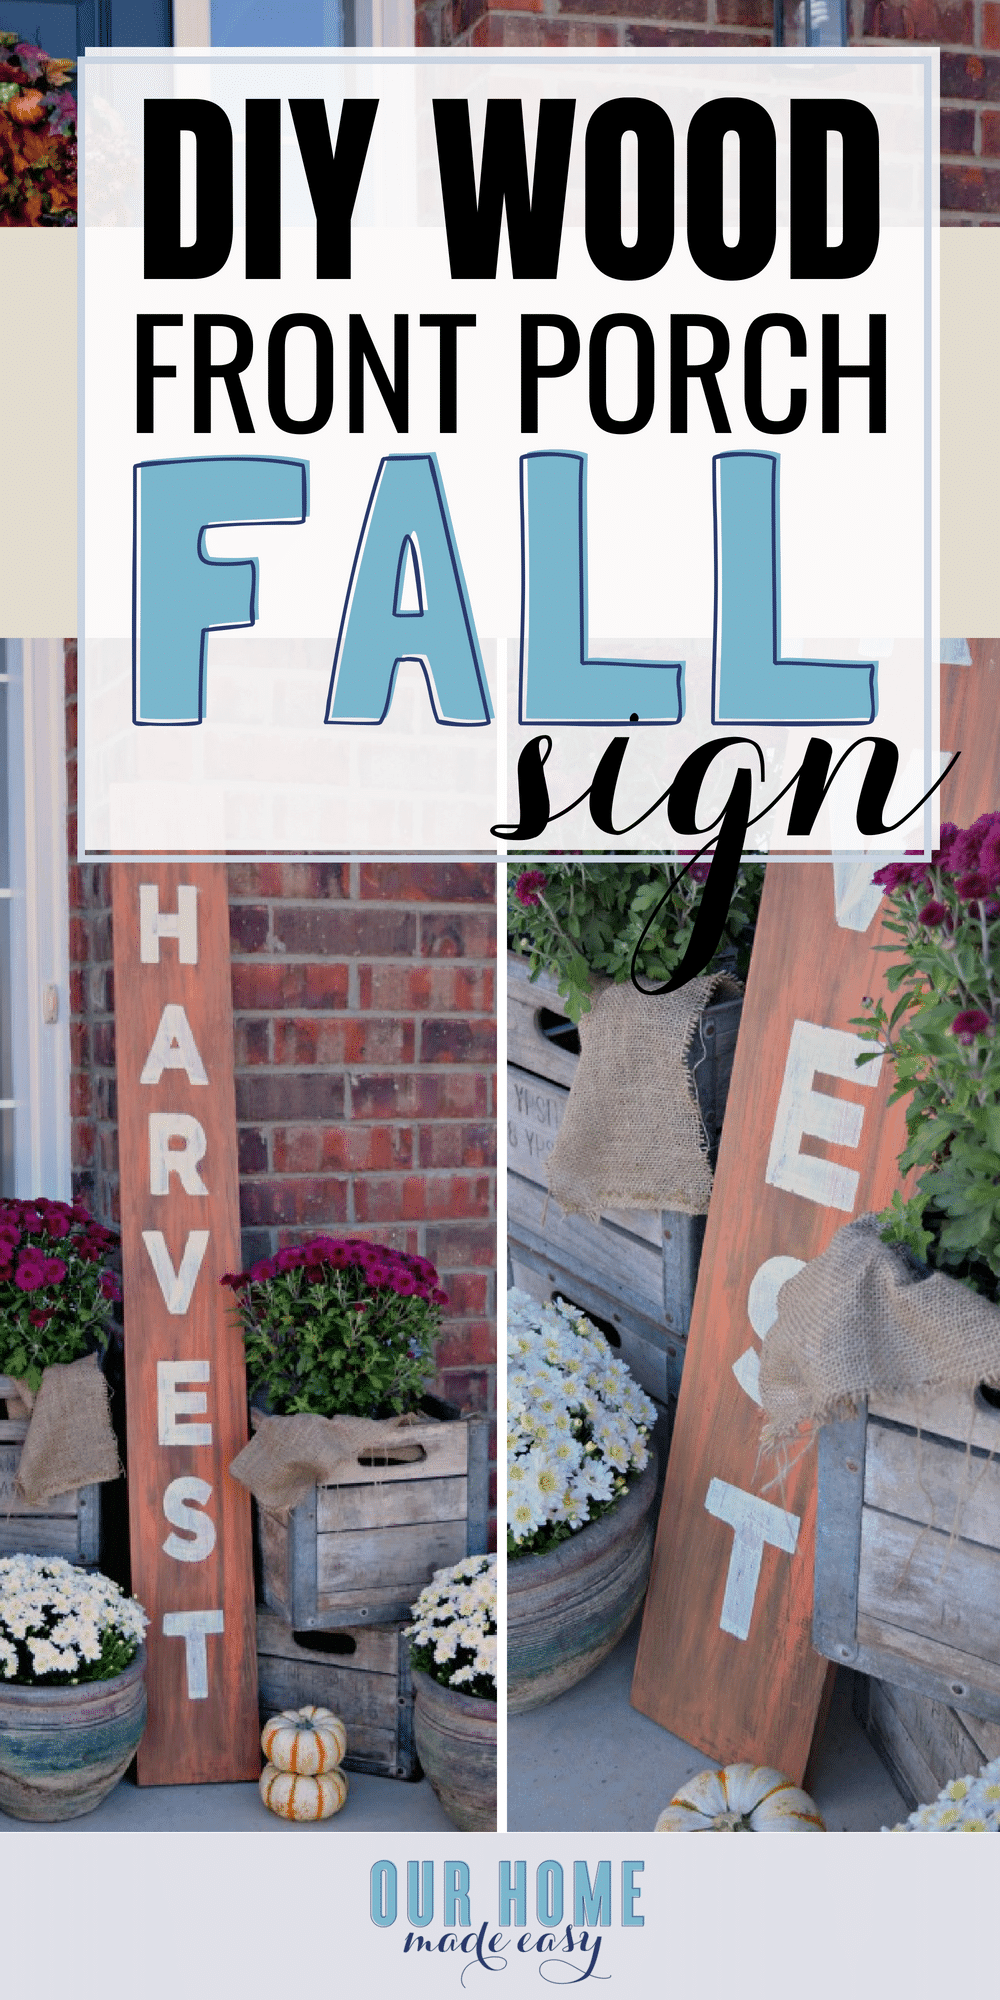 How to Make a DIY Wood Harvest Sign for Your Fall Front Porch Decor